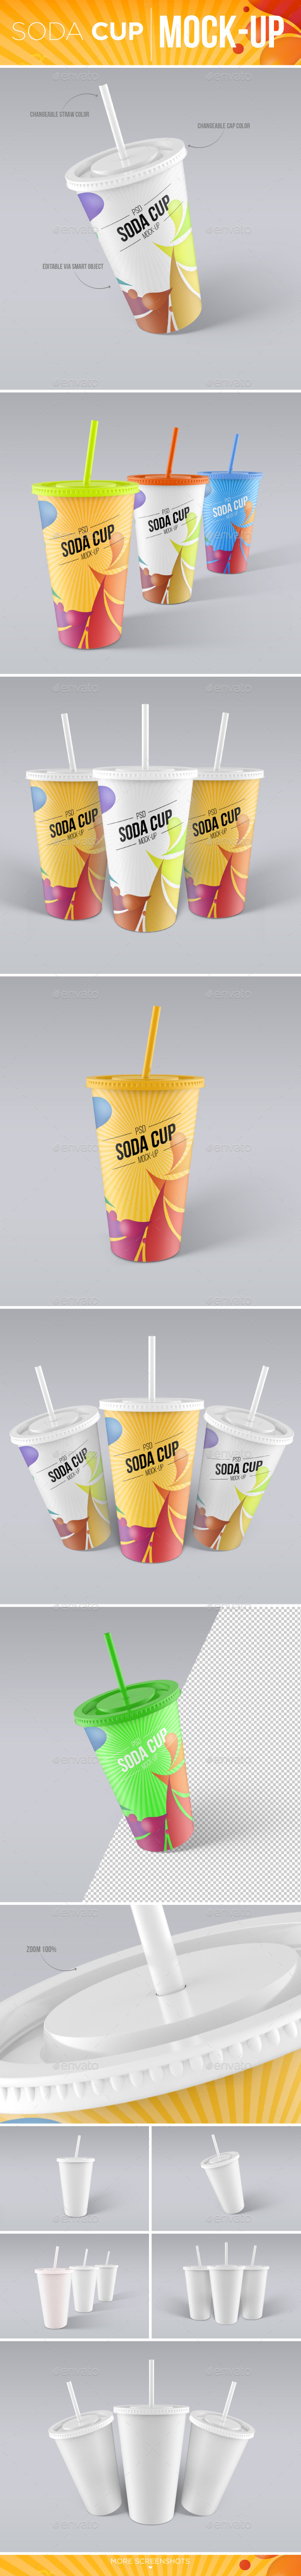 Soda Cup Mock-Up - Food and Drink Packaging